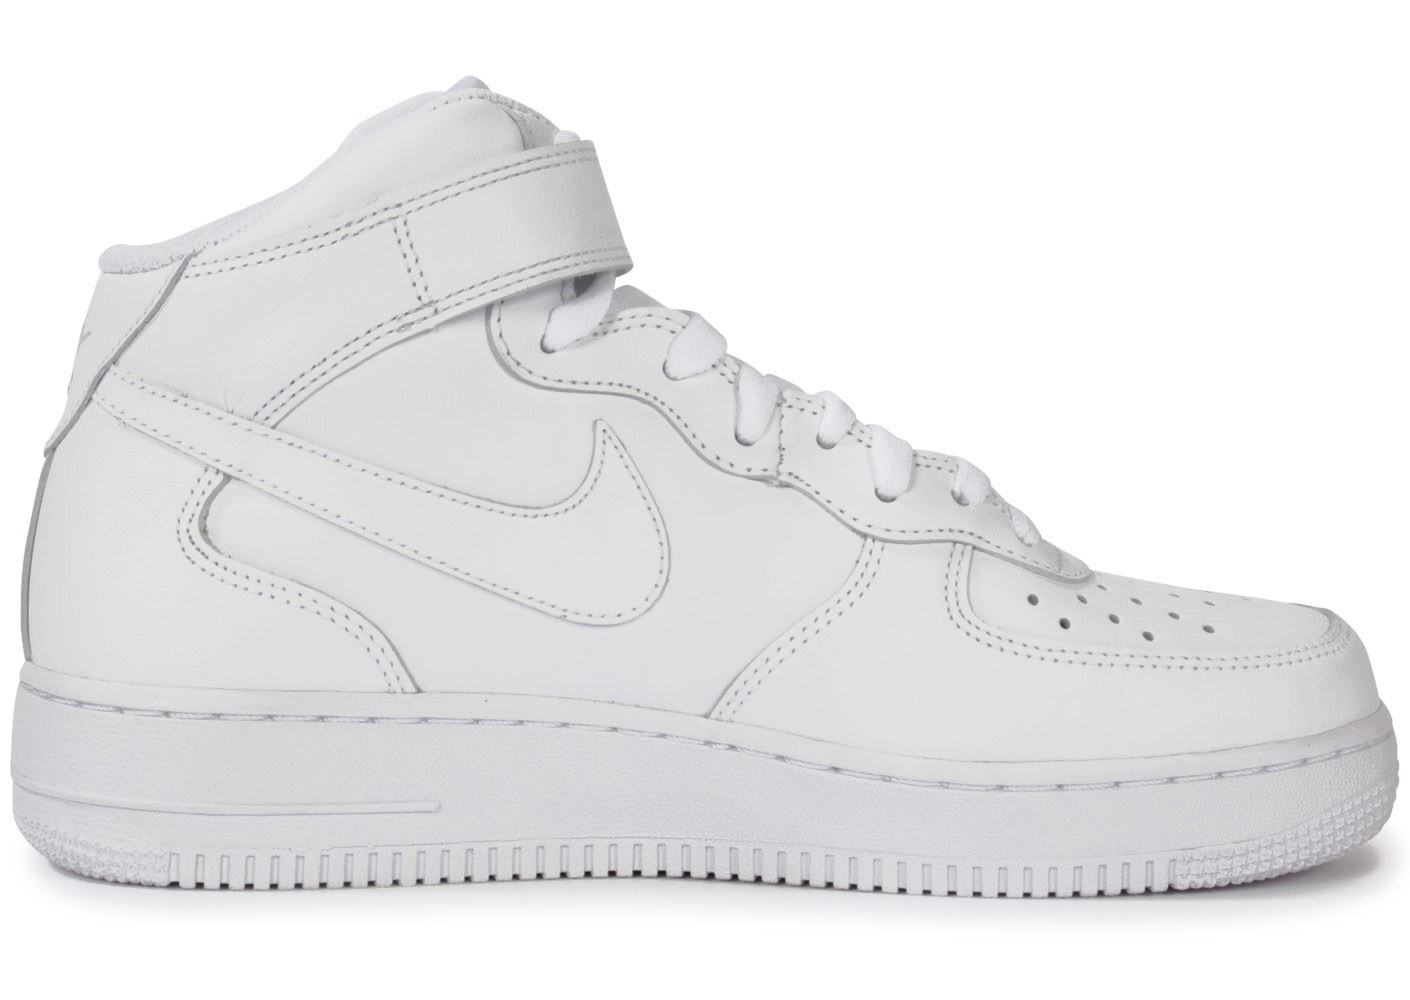 Nike Air Force 1 Mid 07 Blanche - Chaussures Baskets homme - Chausport